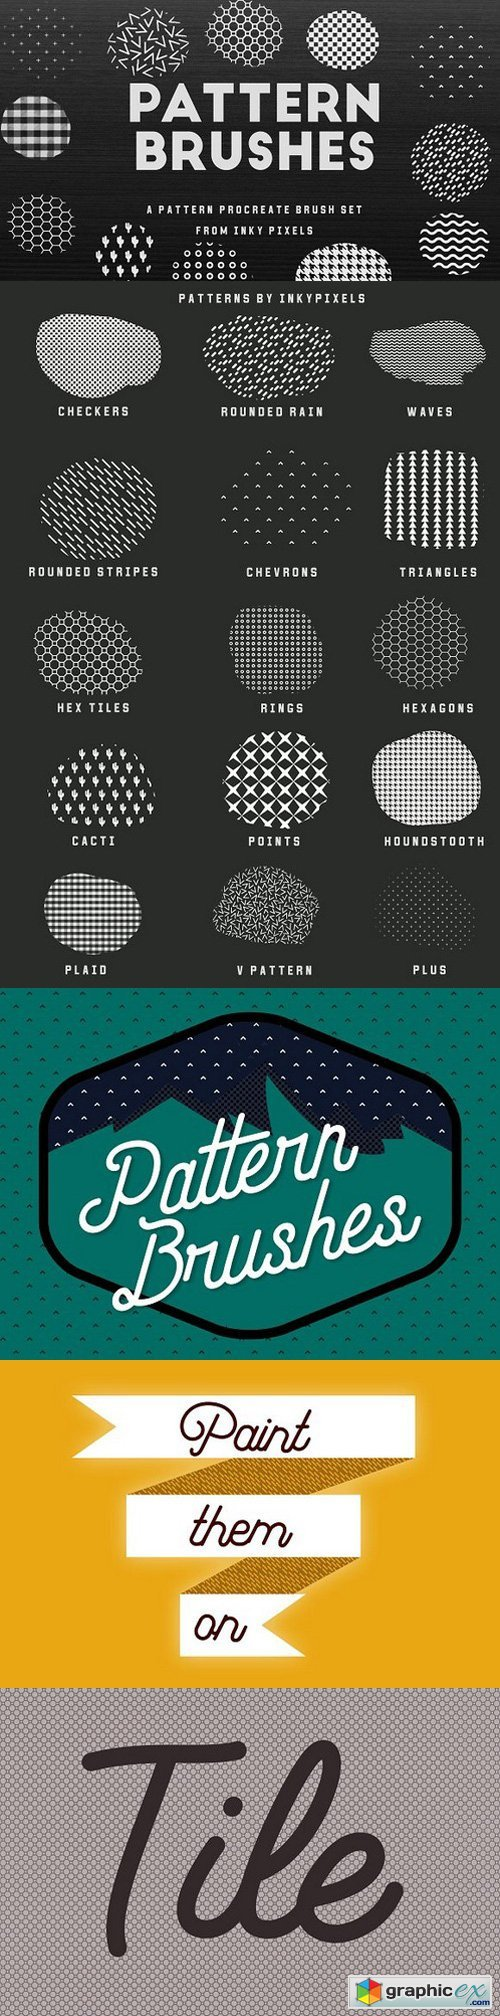 15 Procreate Pattern Brushes